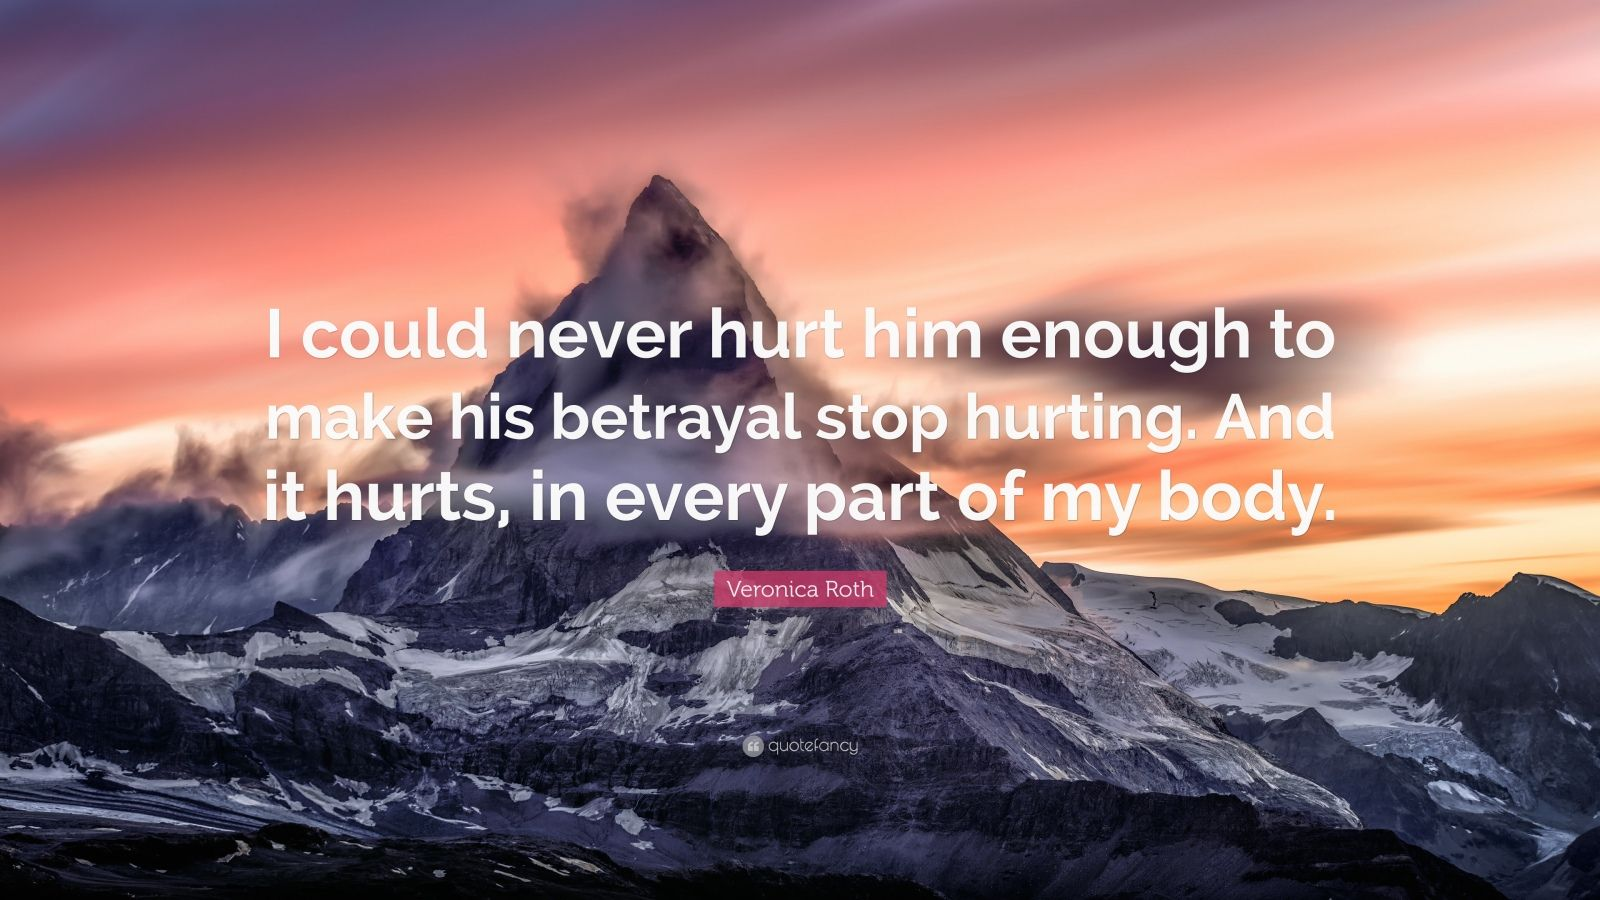 Hurting Love Quotes Wallpapers Betrayal Quotes 40 Wallpapers Quotefancy